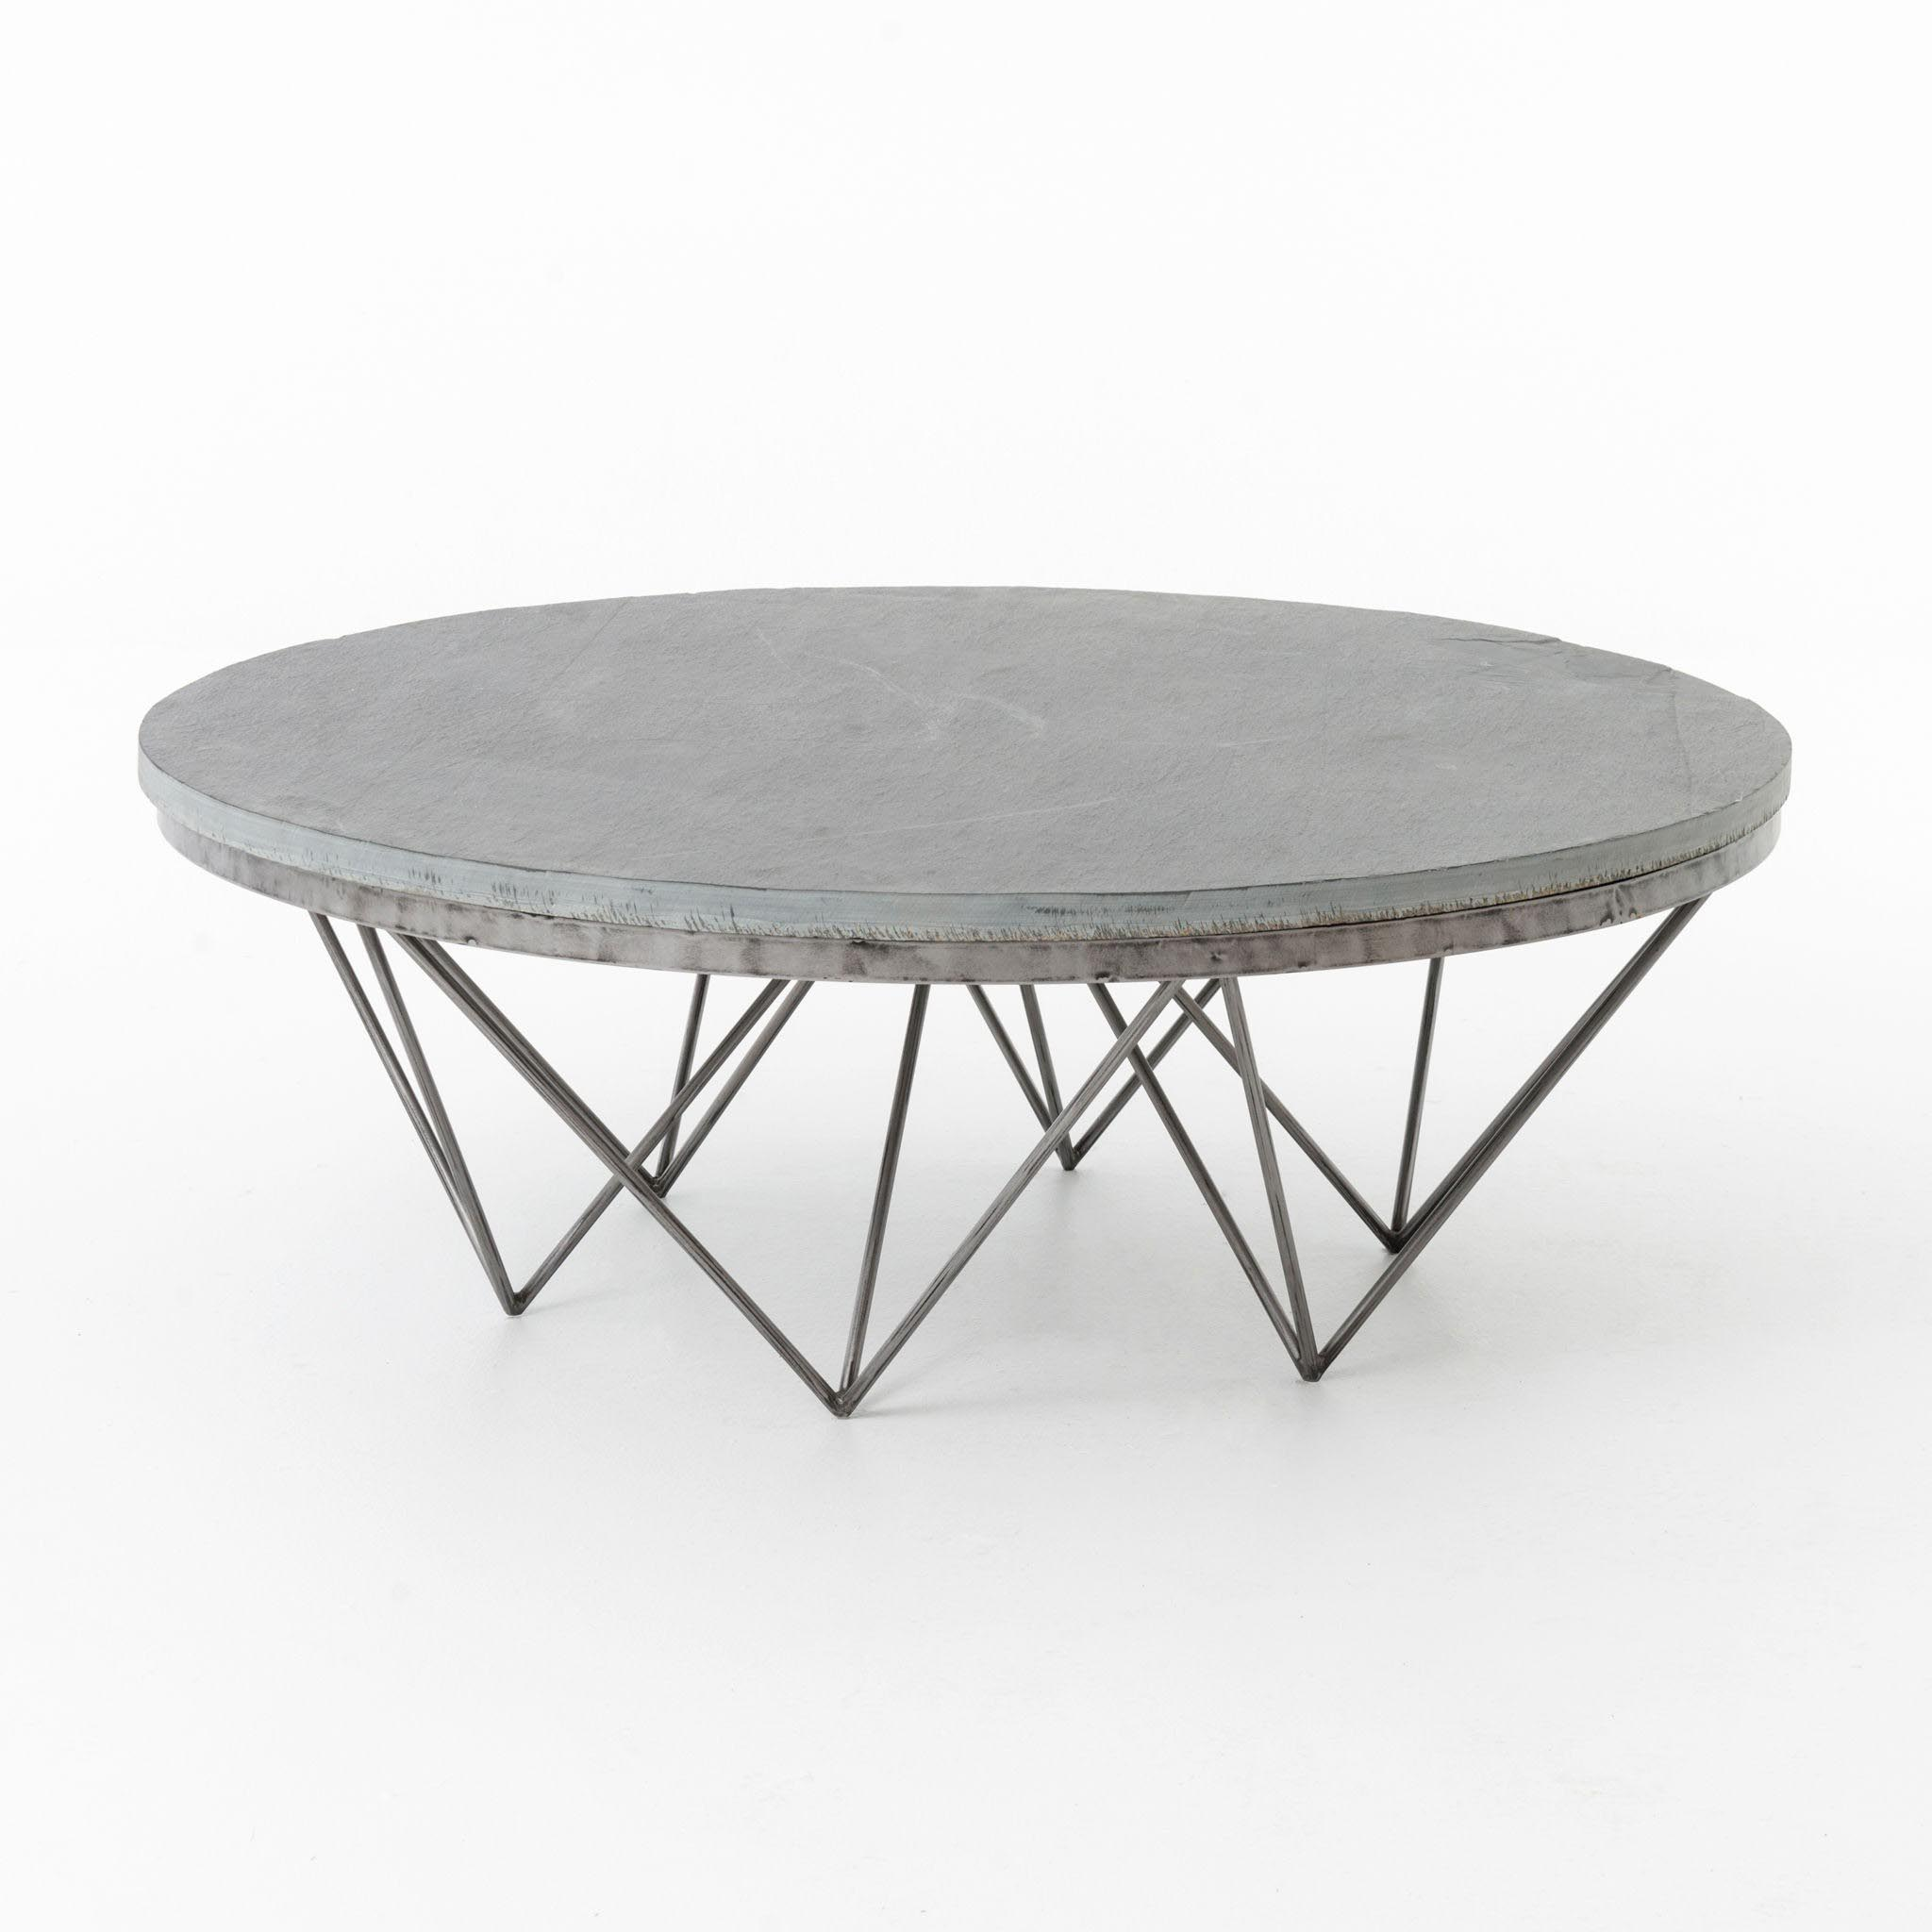 Circle Coffee Table Significant Element of the Recreation Area